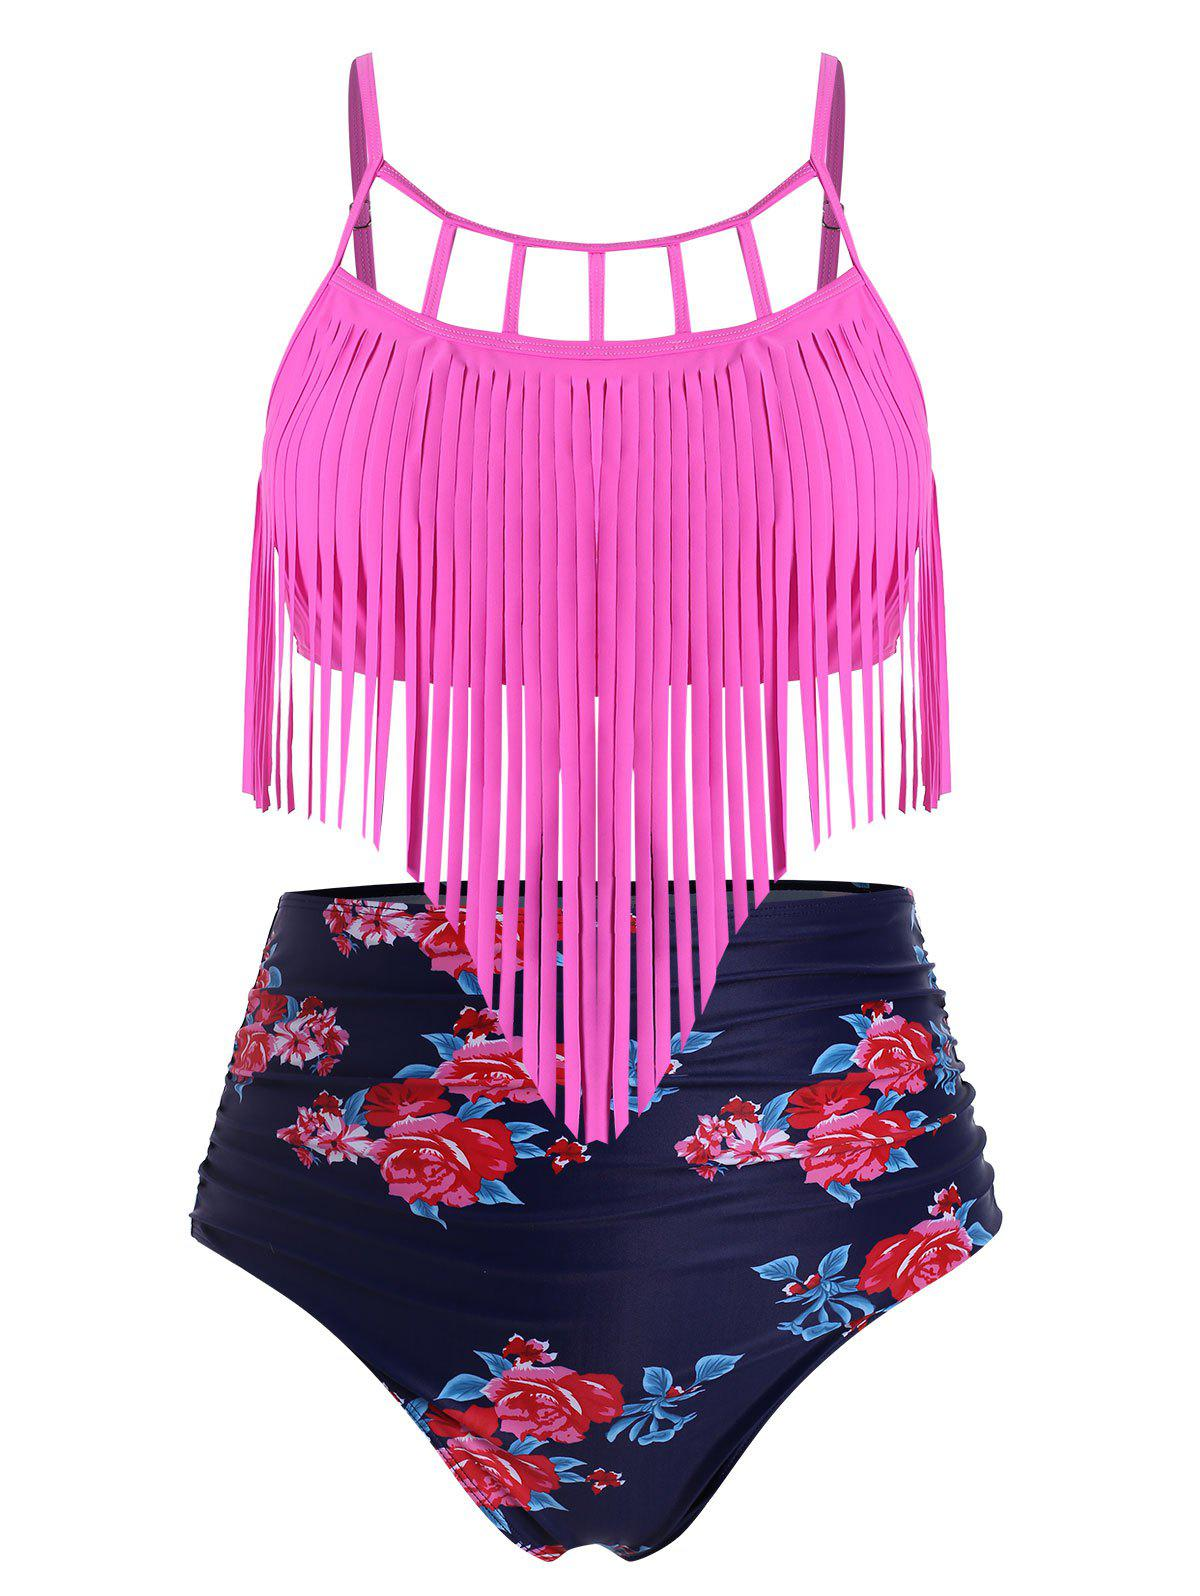 Fringed Floral Ruched High Waisted Plus Size Tankini Swimsuit - ROSE RED 4X